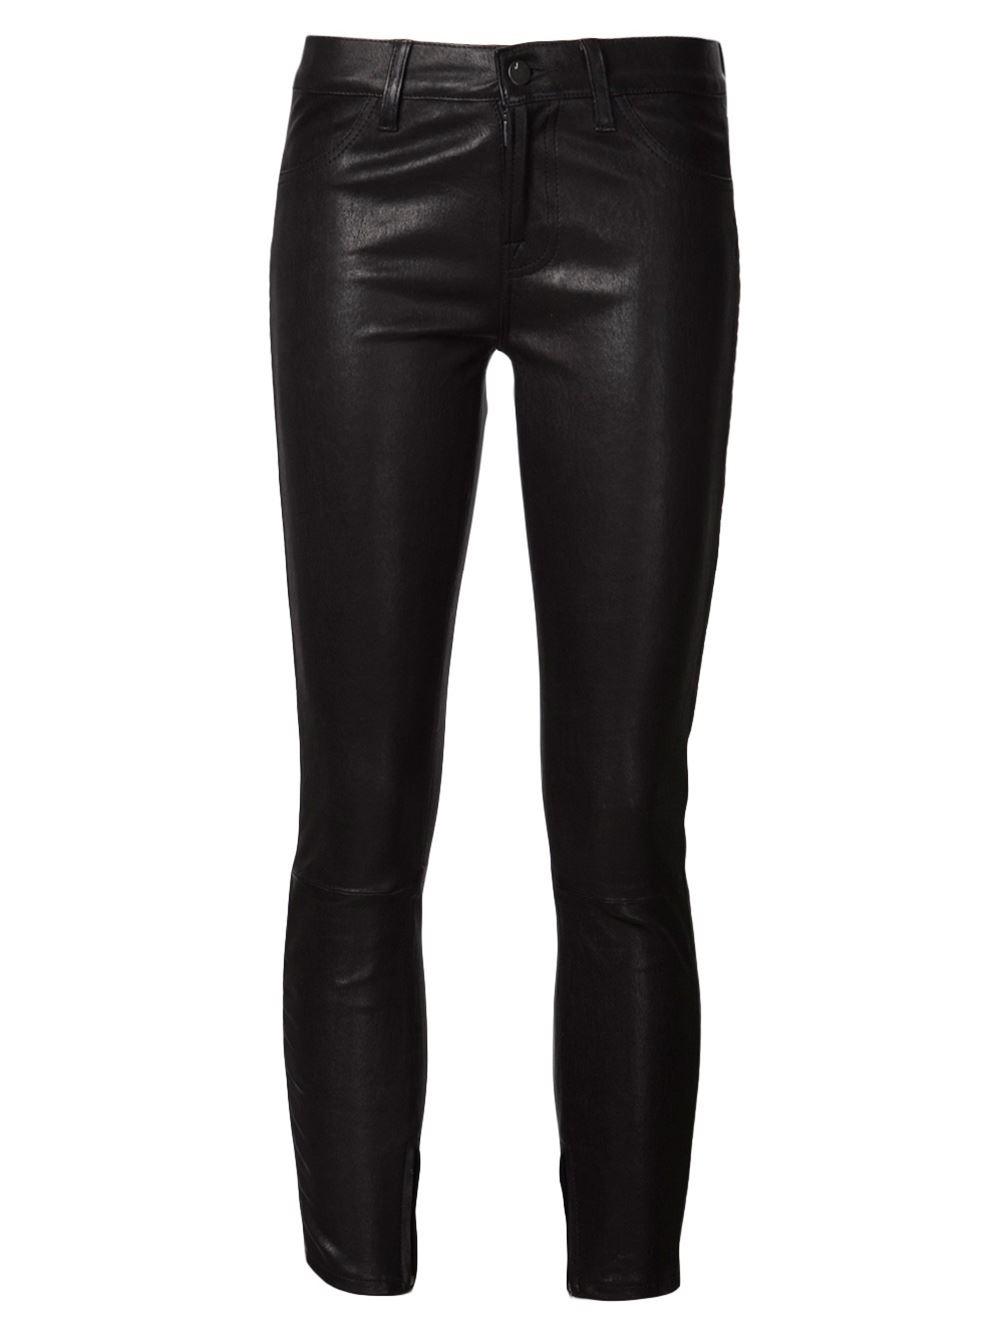 Black leather cropped trousers from J Brand